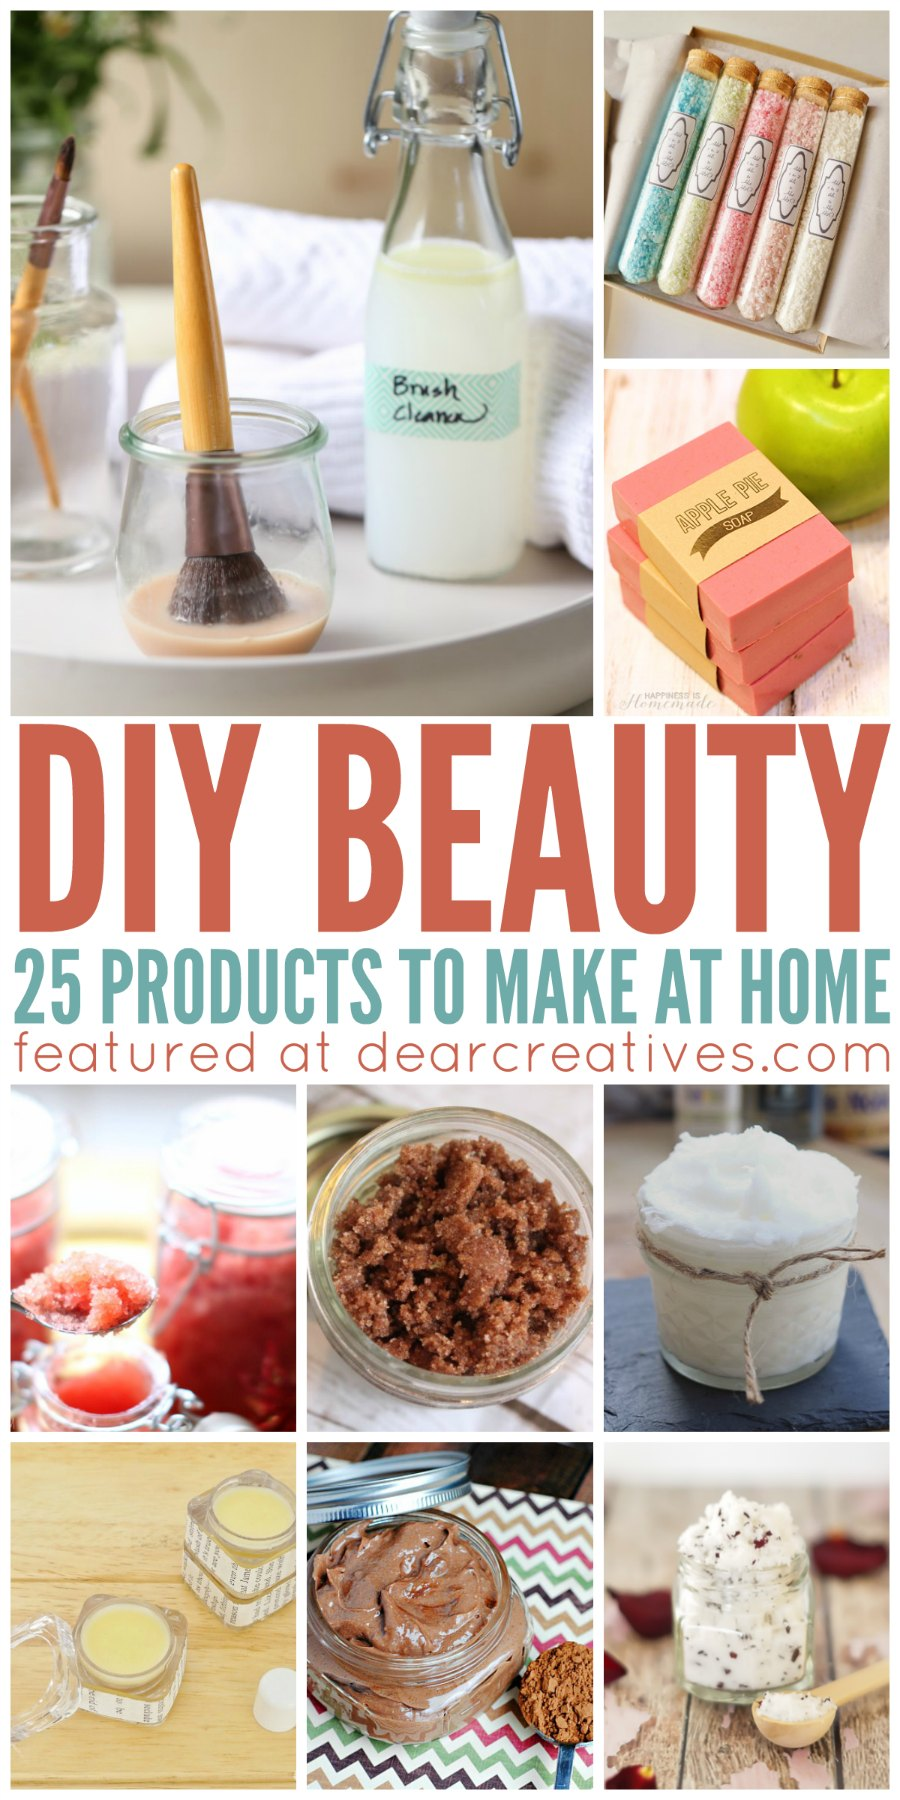 DIY Beauty |diy beauty products to make at home | DIY Beauty Recipes and Tutorials